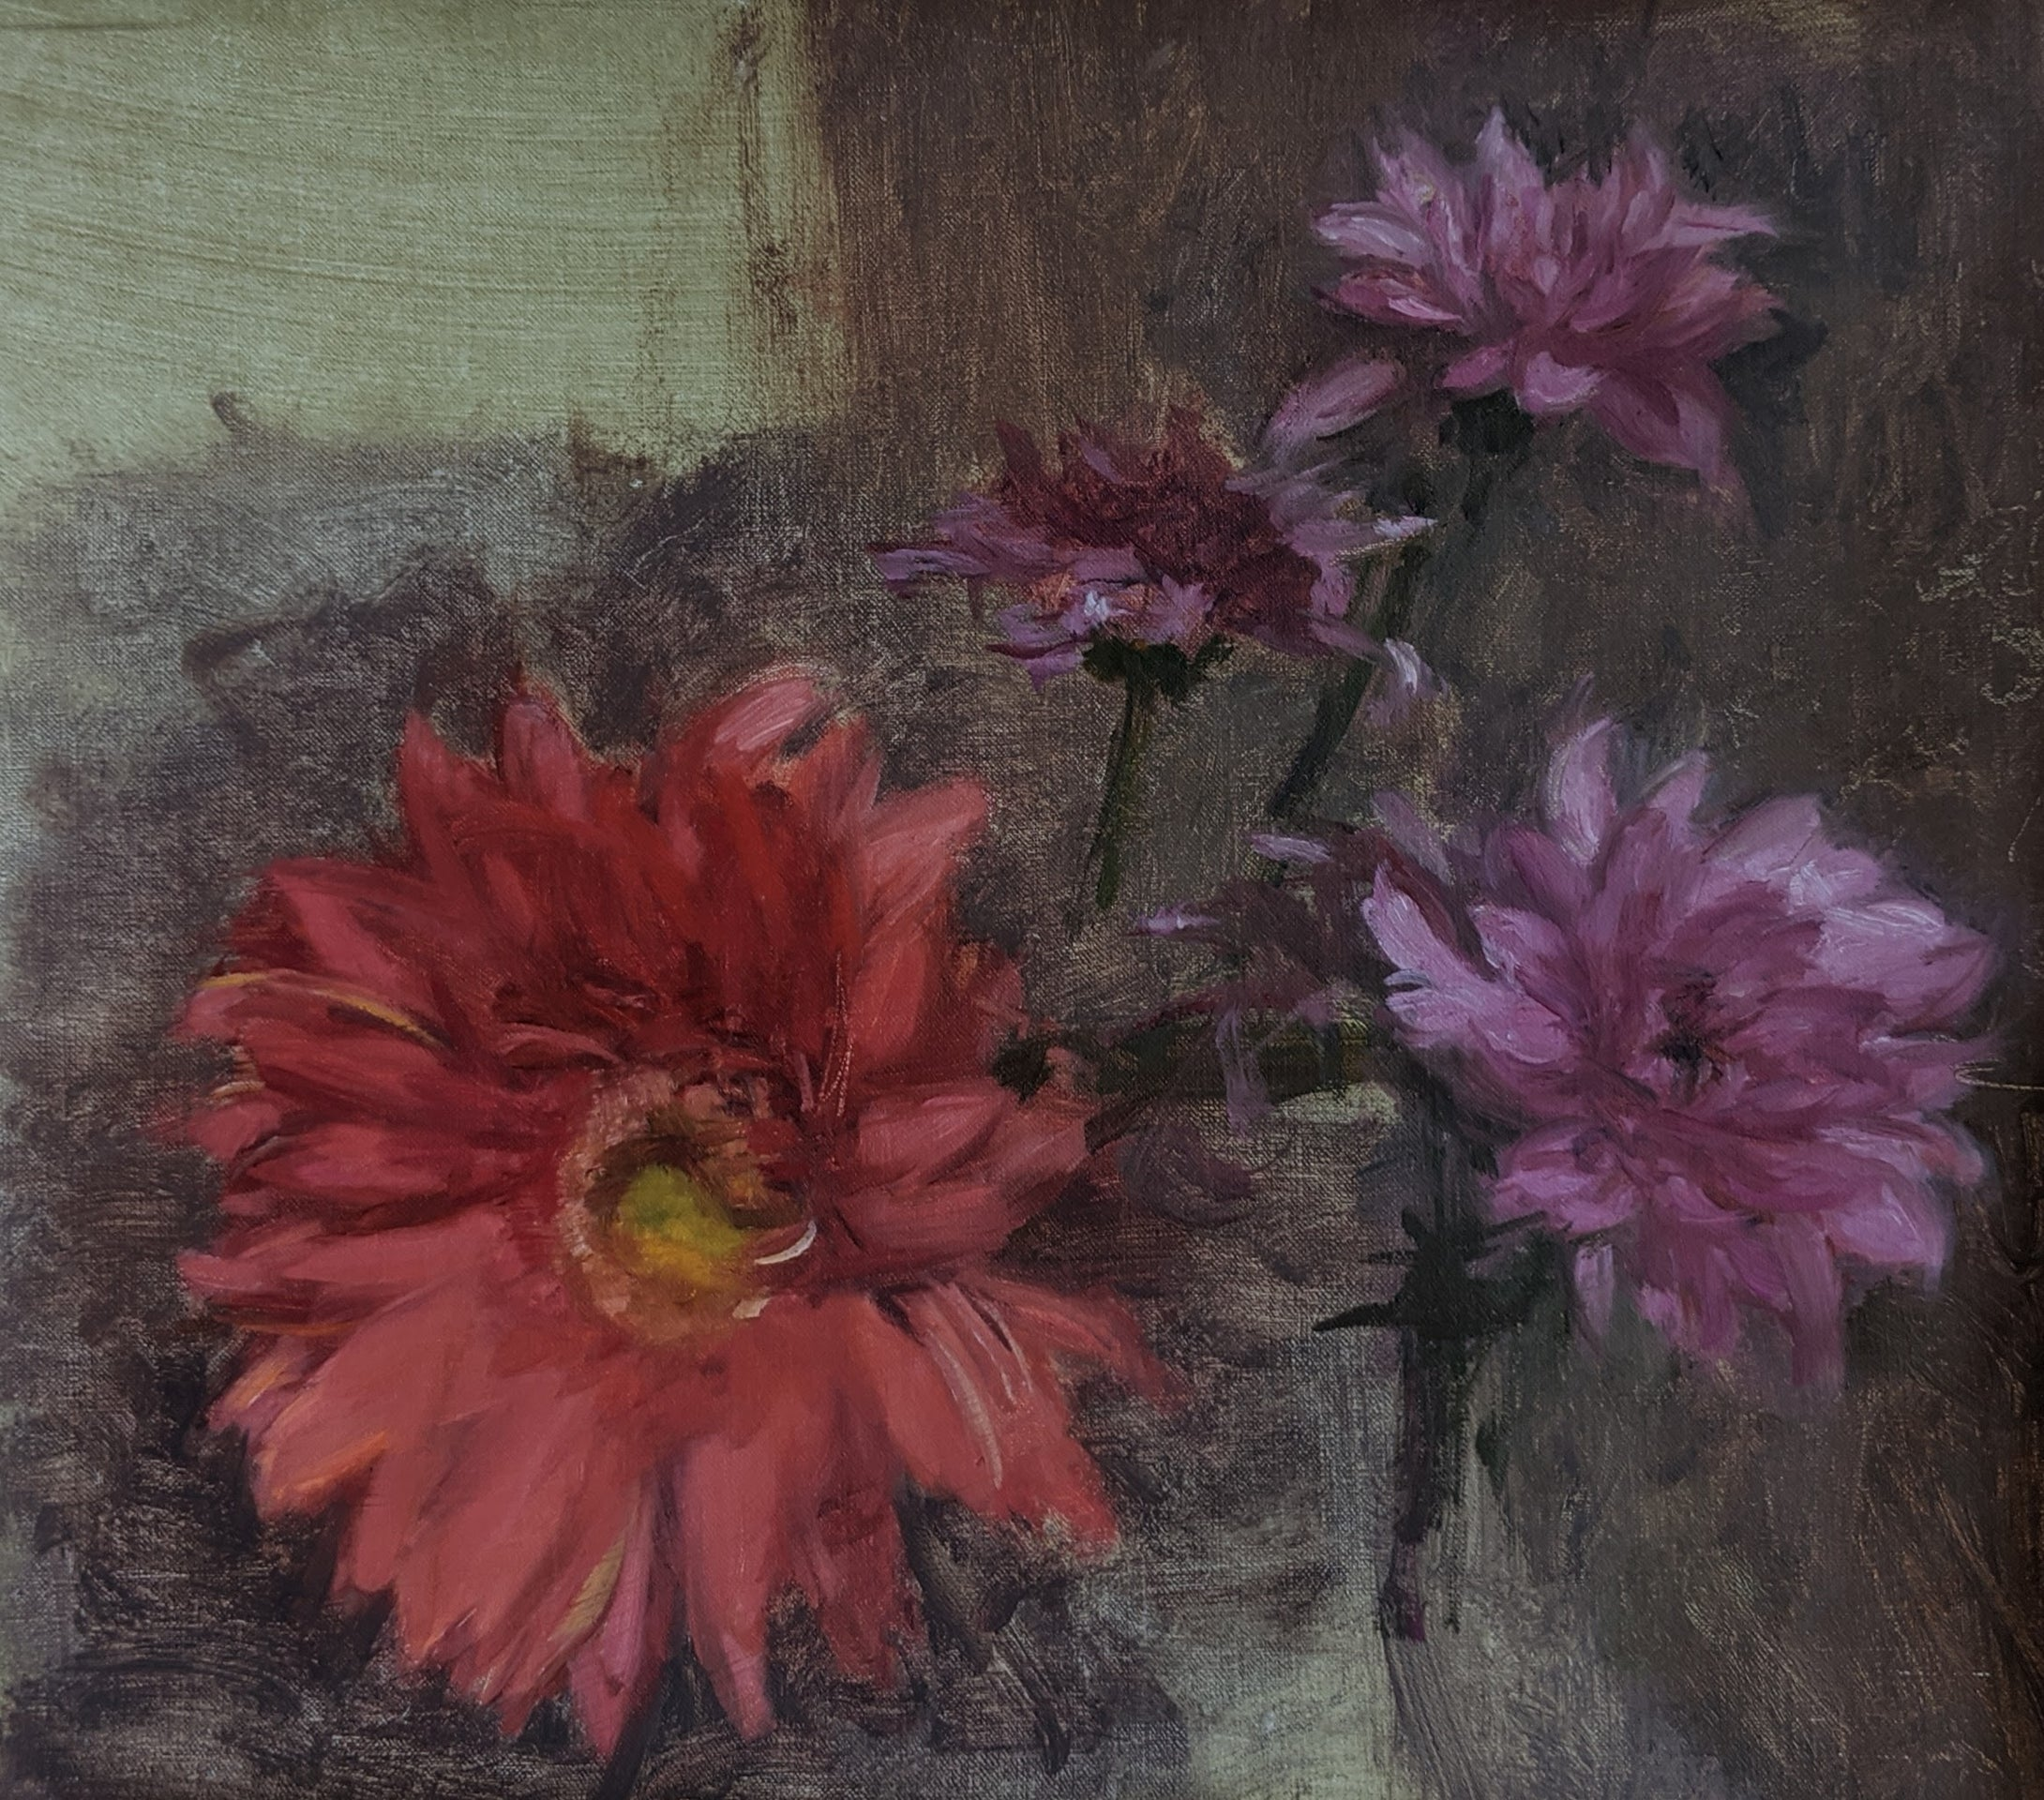 Study of Gerber Daisy and Mums